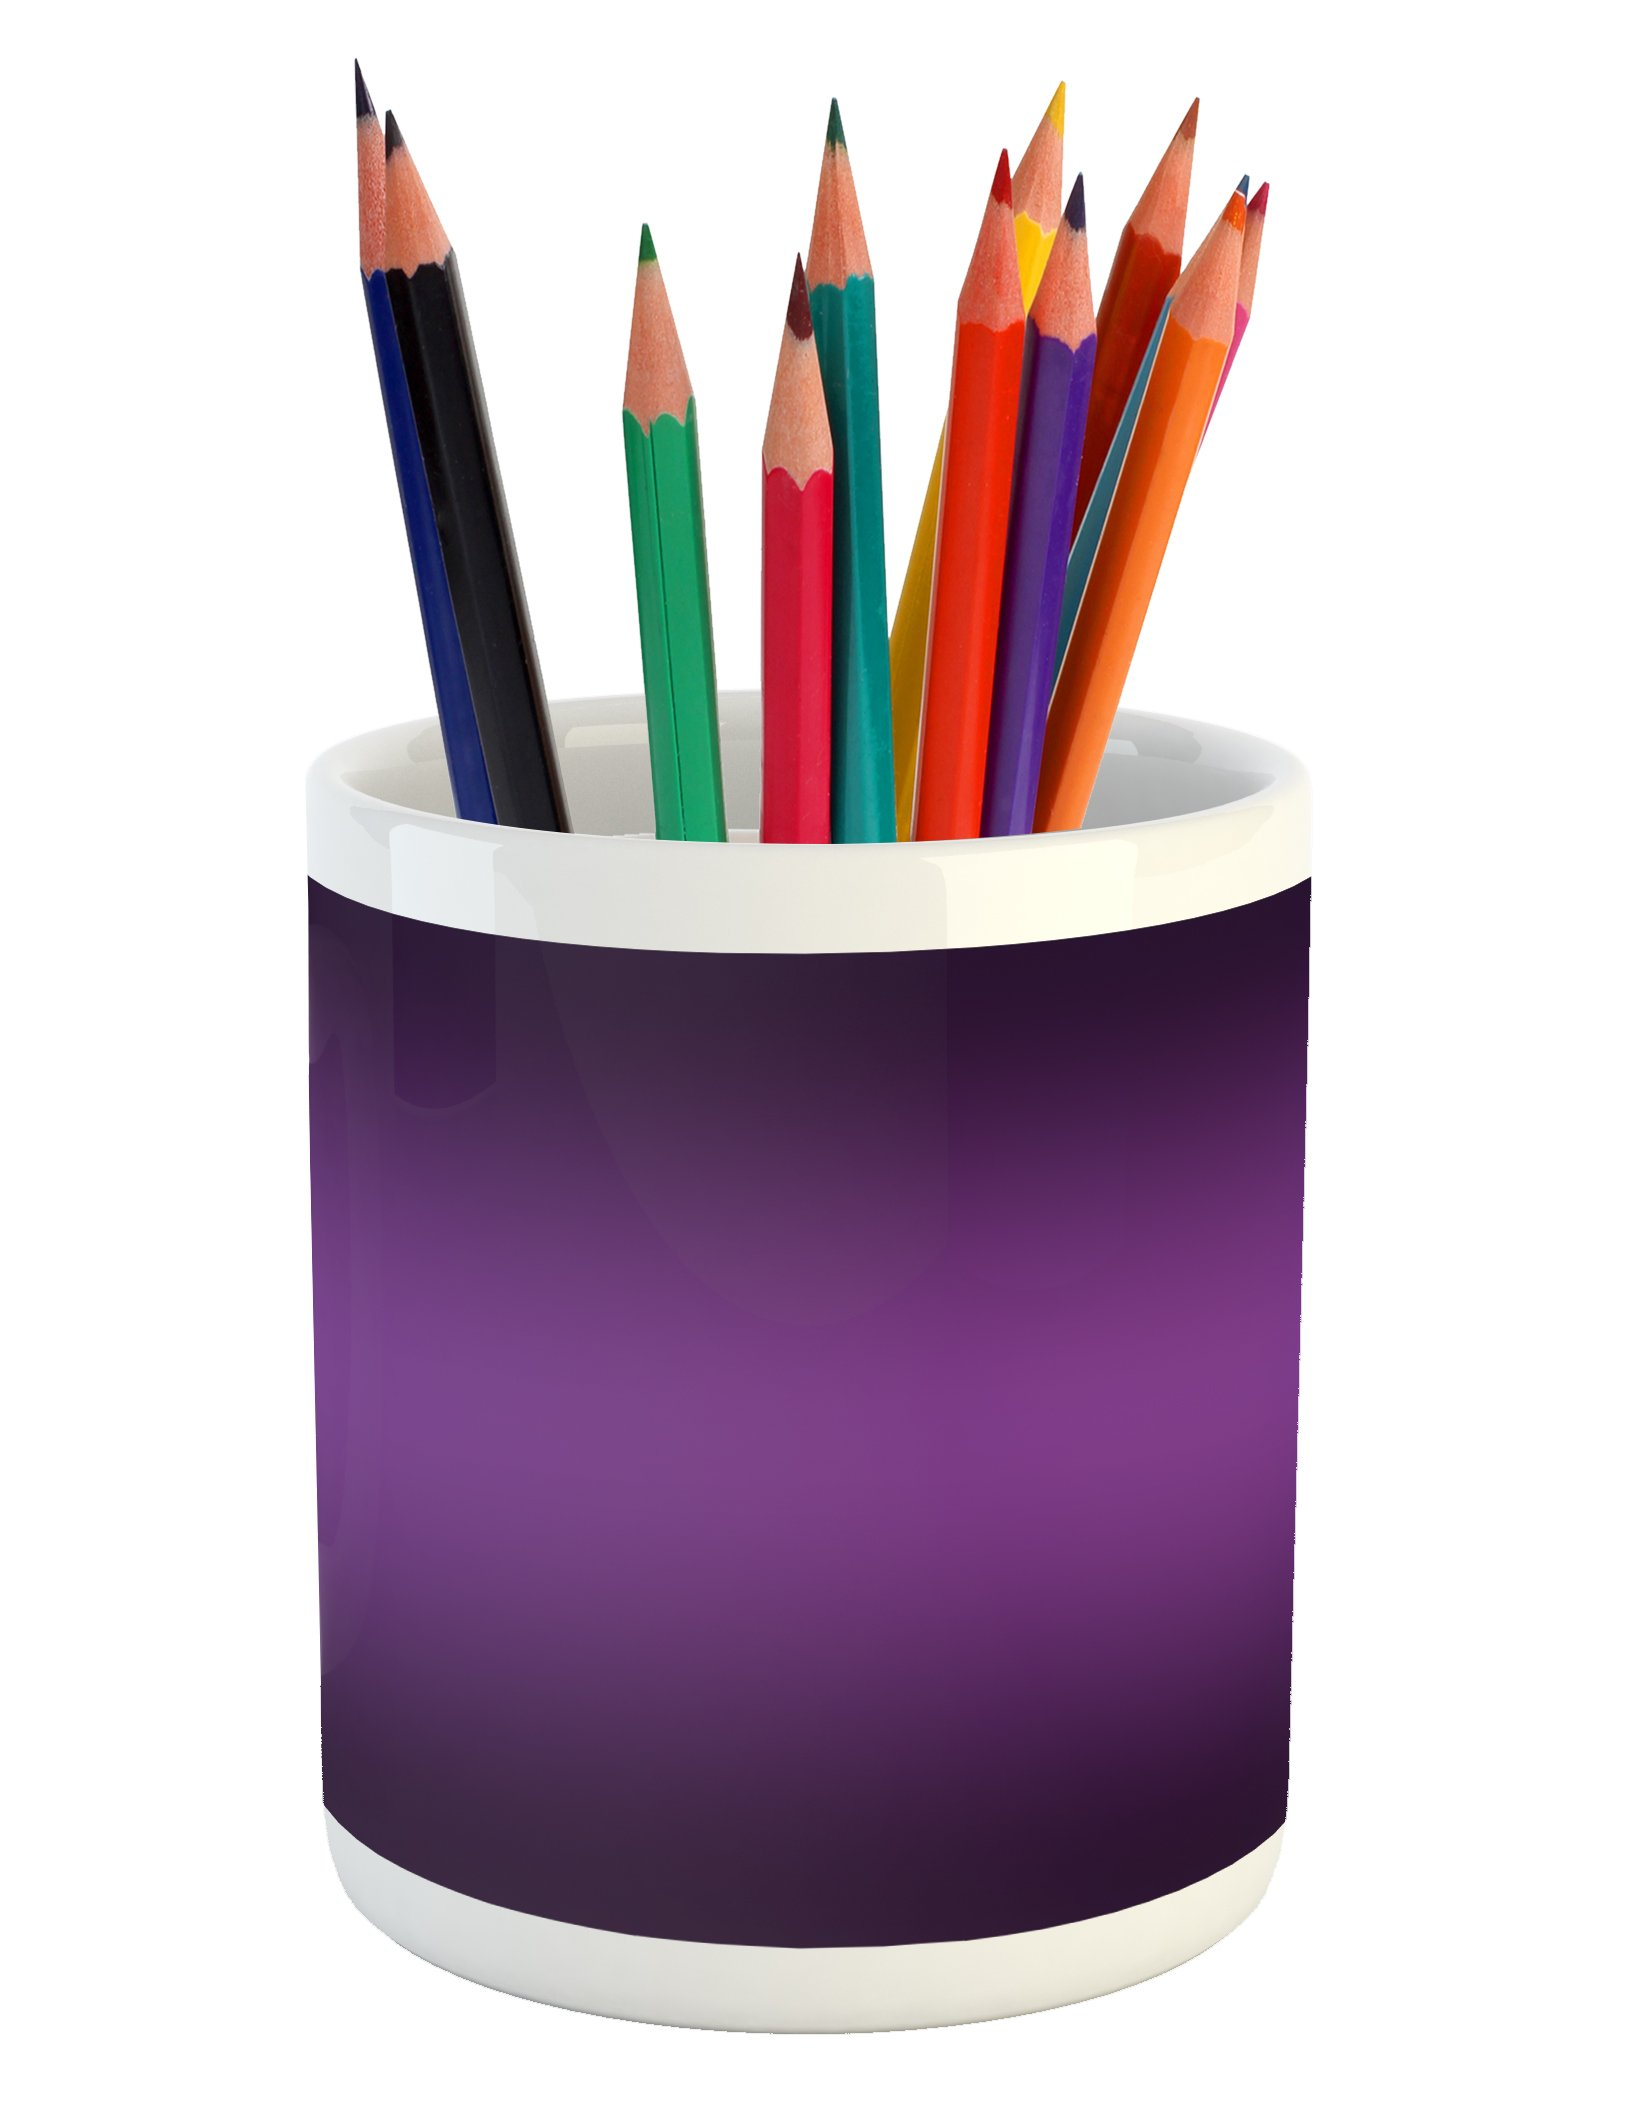 Ambesonne Ombre Pencil Pen Holder, Cinema Curtain Movies Series Inspired Color Ombre Design Digital Artsy Styled Print Image, Printed Ceramic Pencil Pen Holder for Desk Office Accessory, Purple by Ambesonne